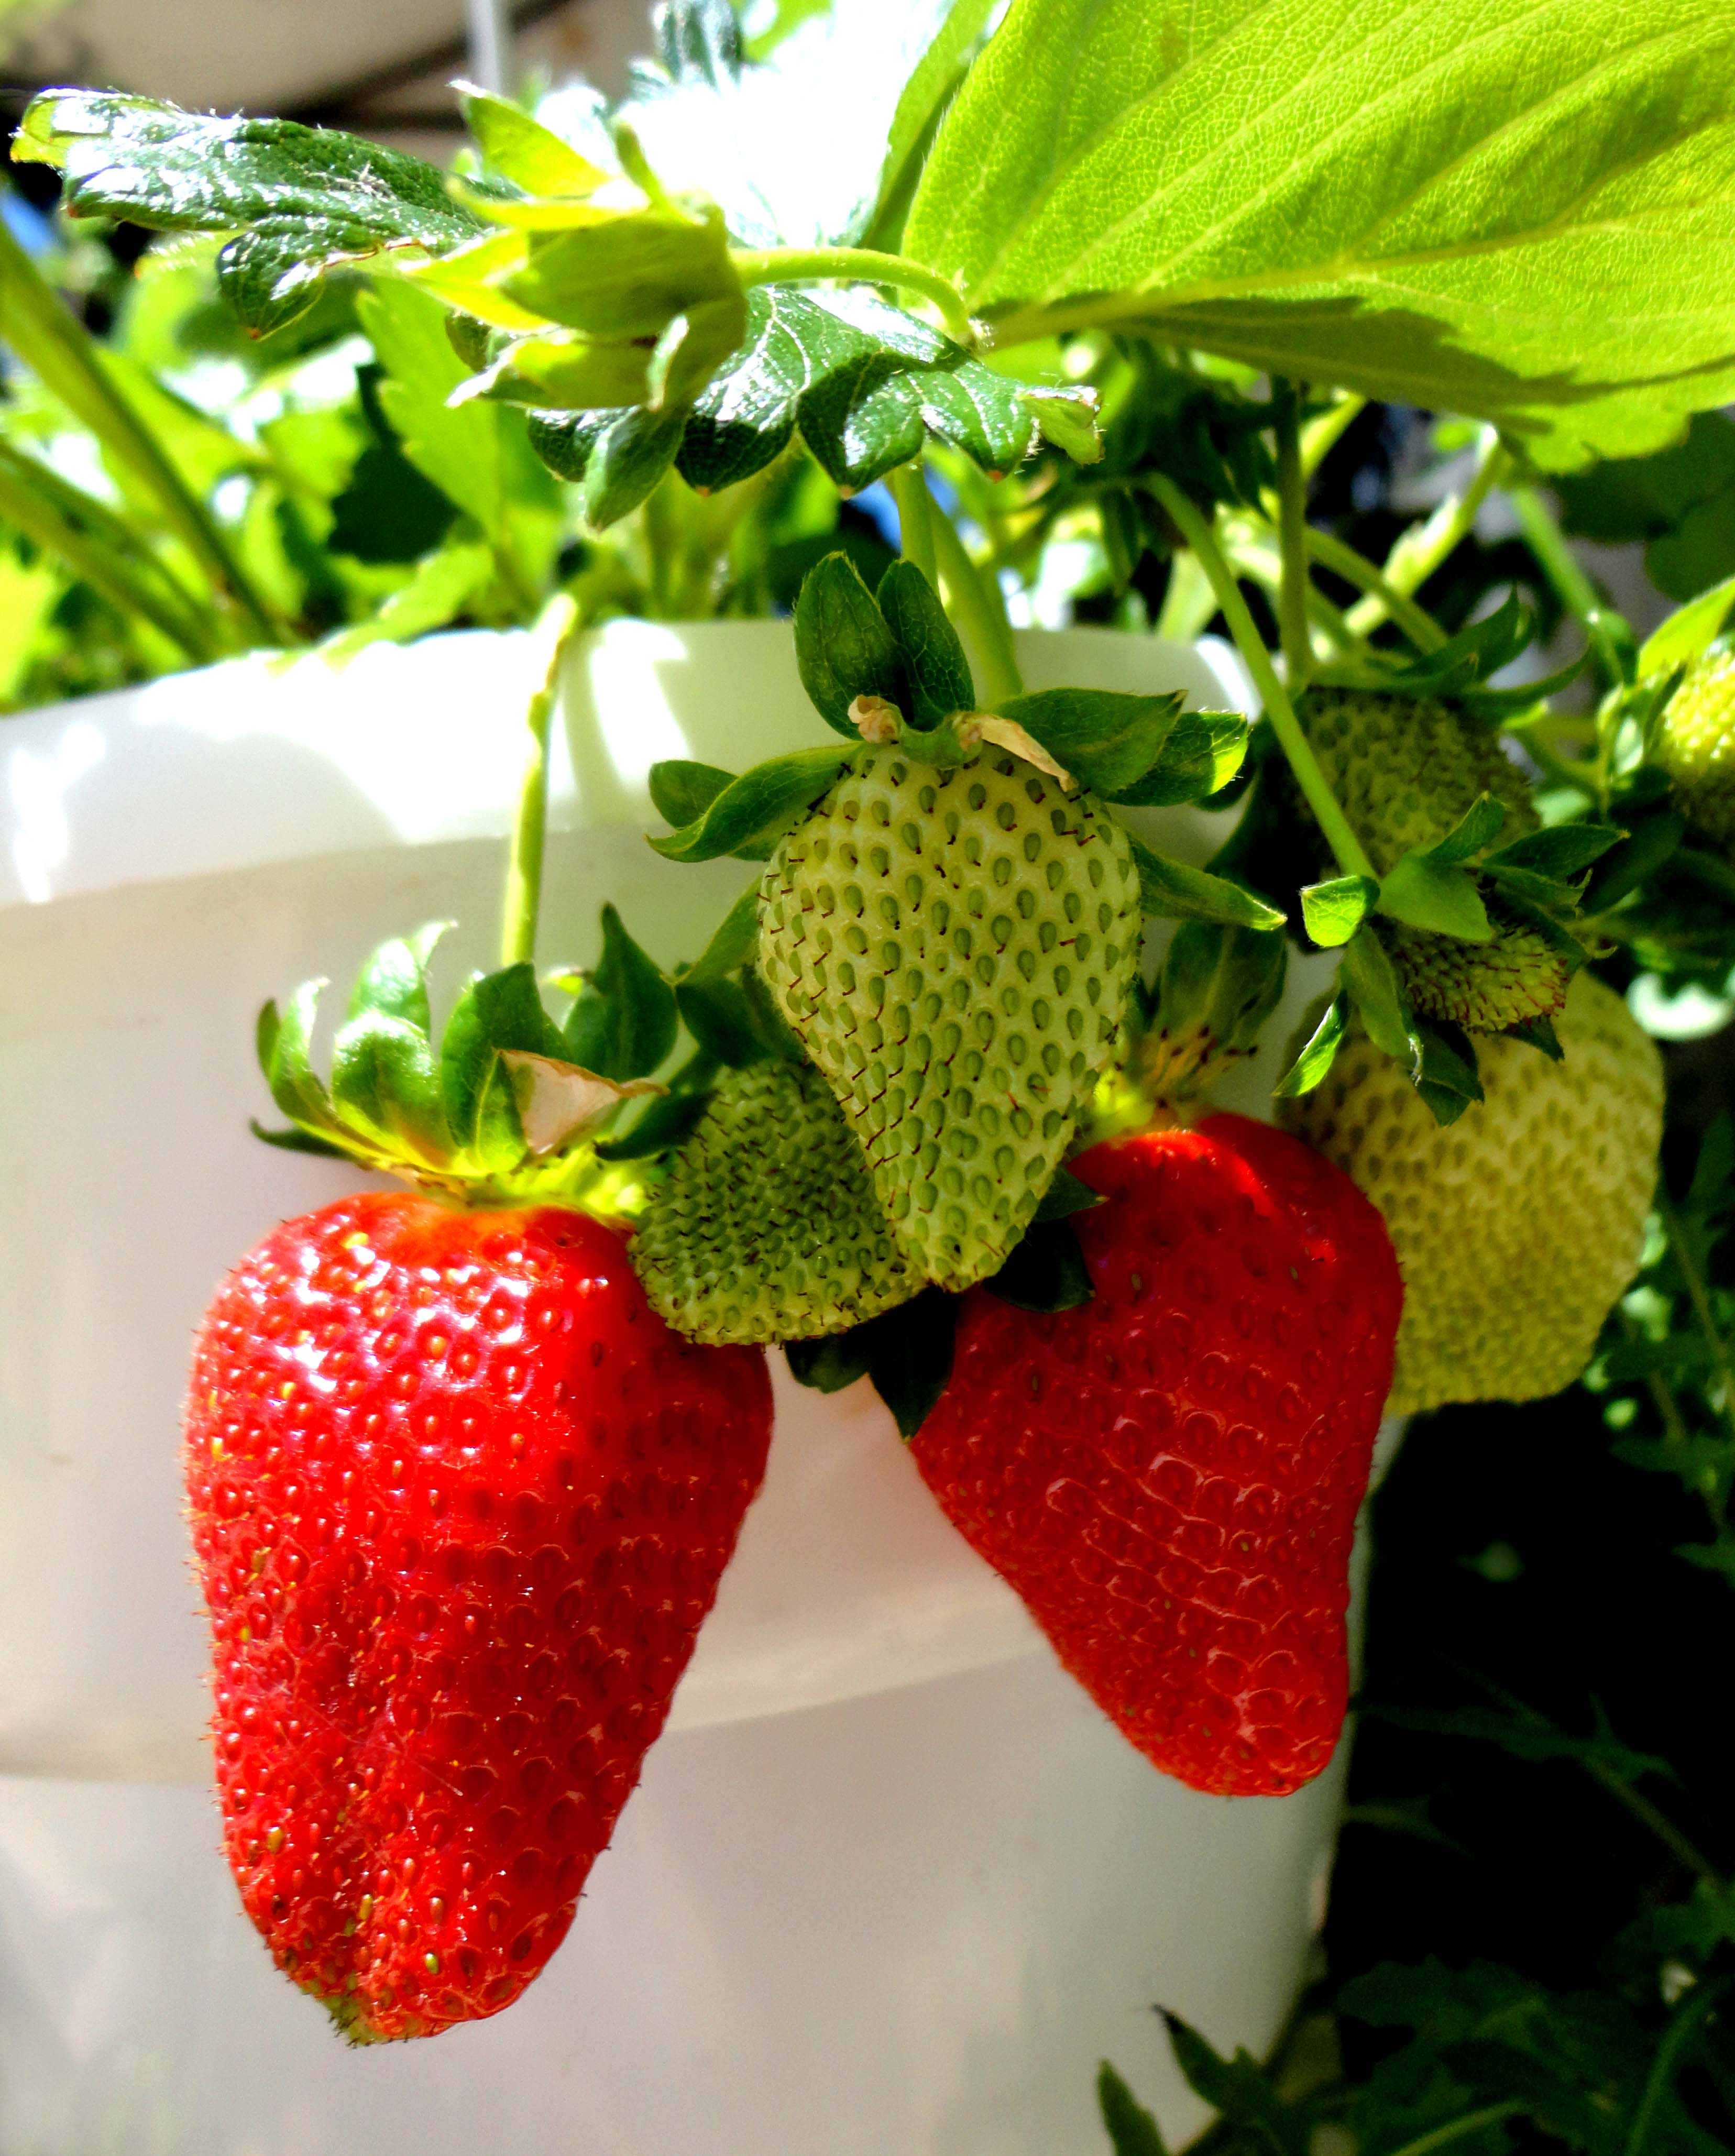 How to plant strawberries After a culture, plant strawberries When planting strawberries with a mustache 90